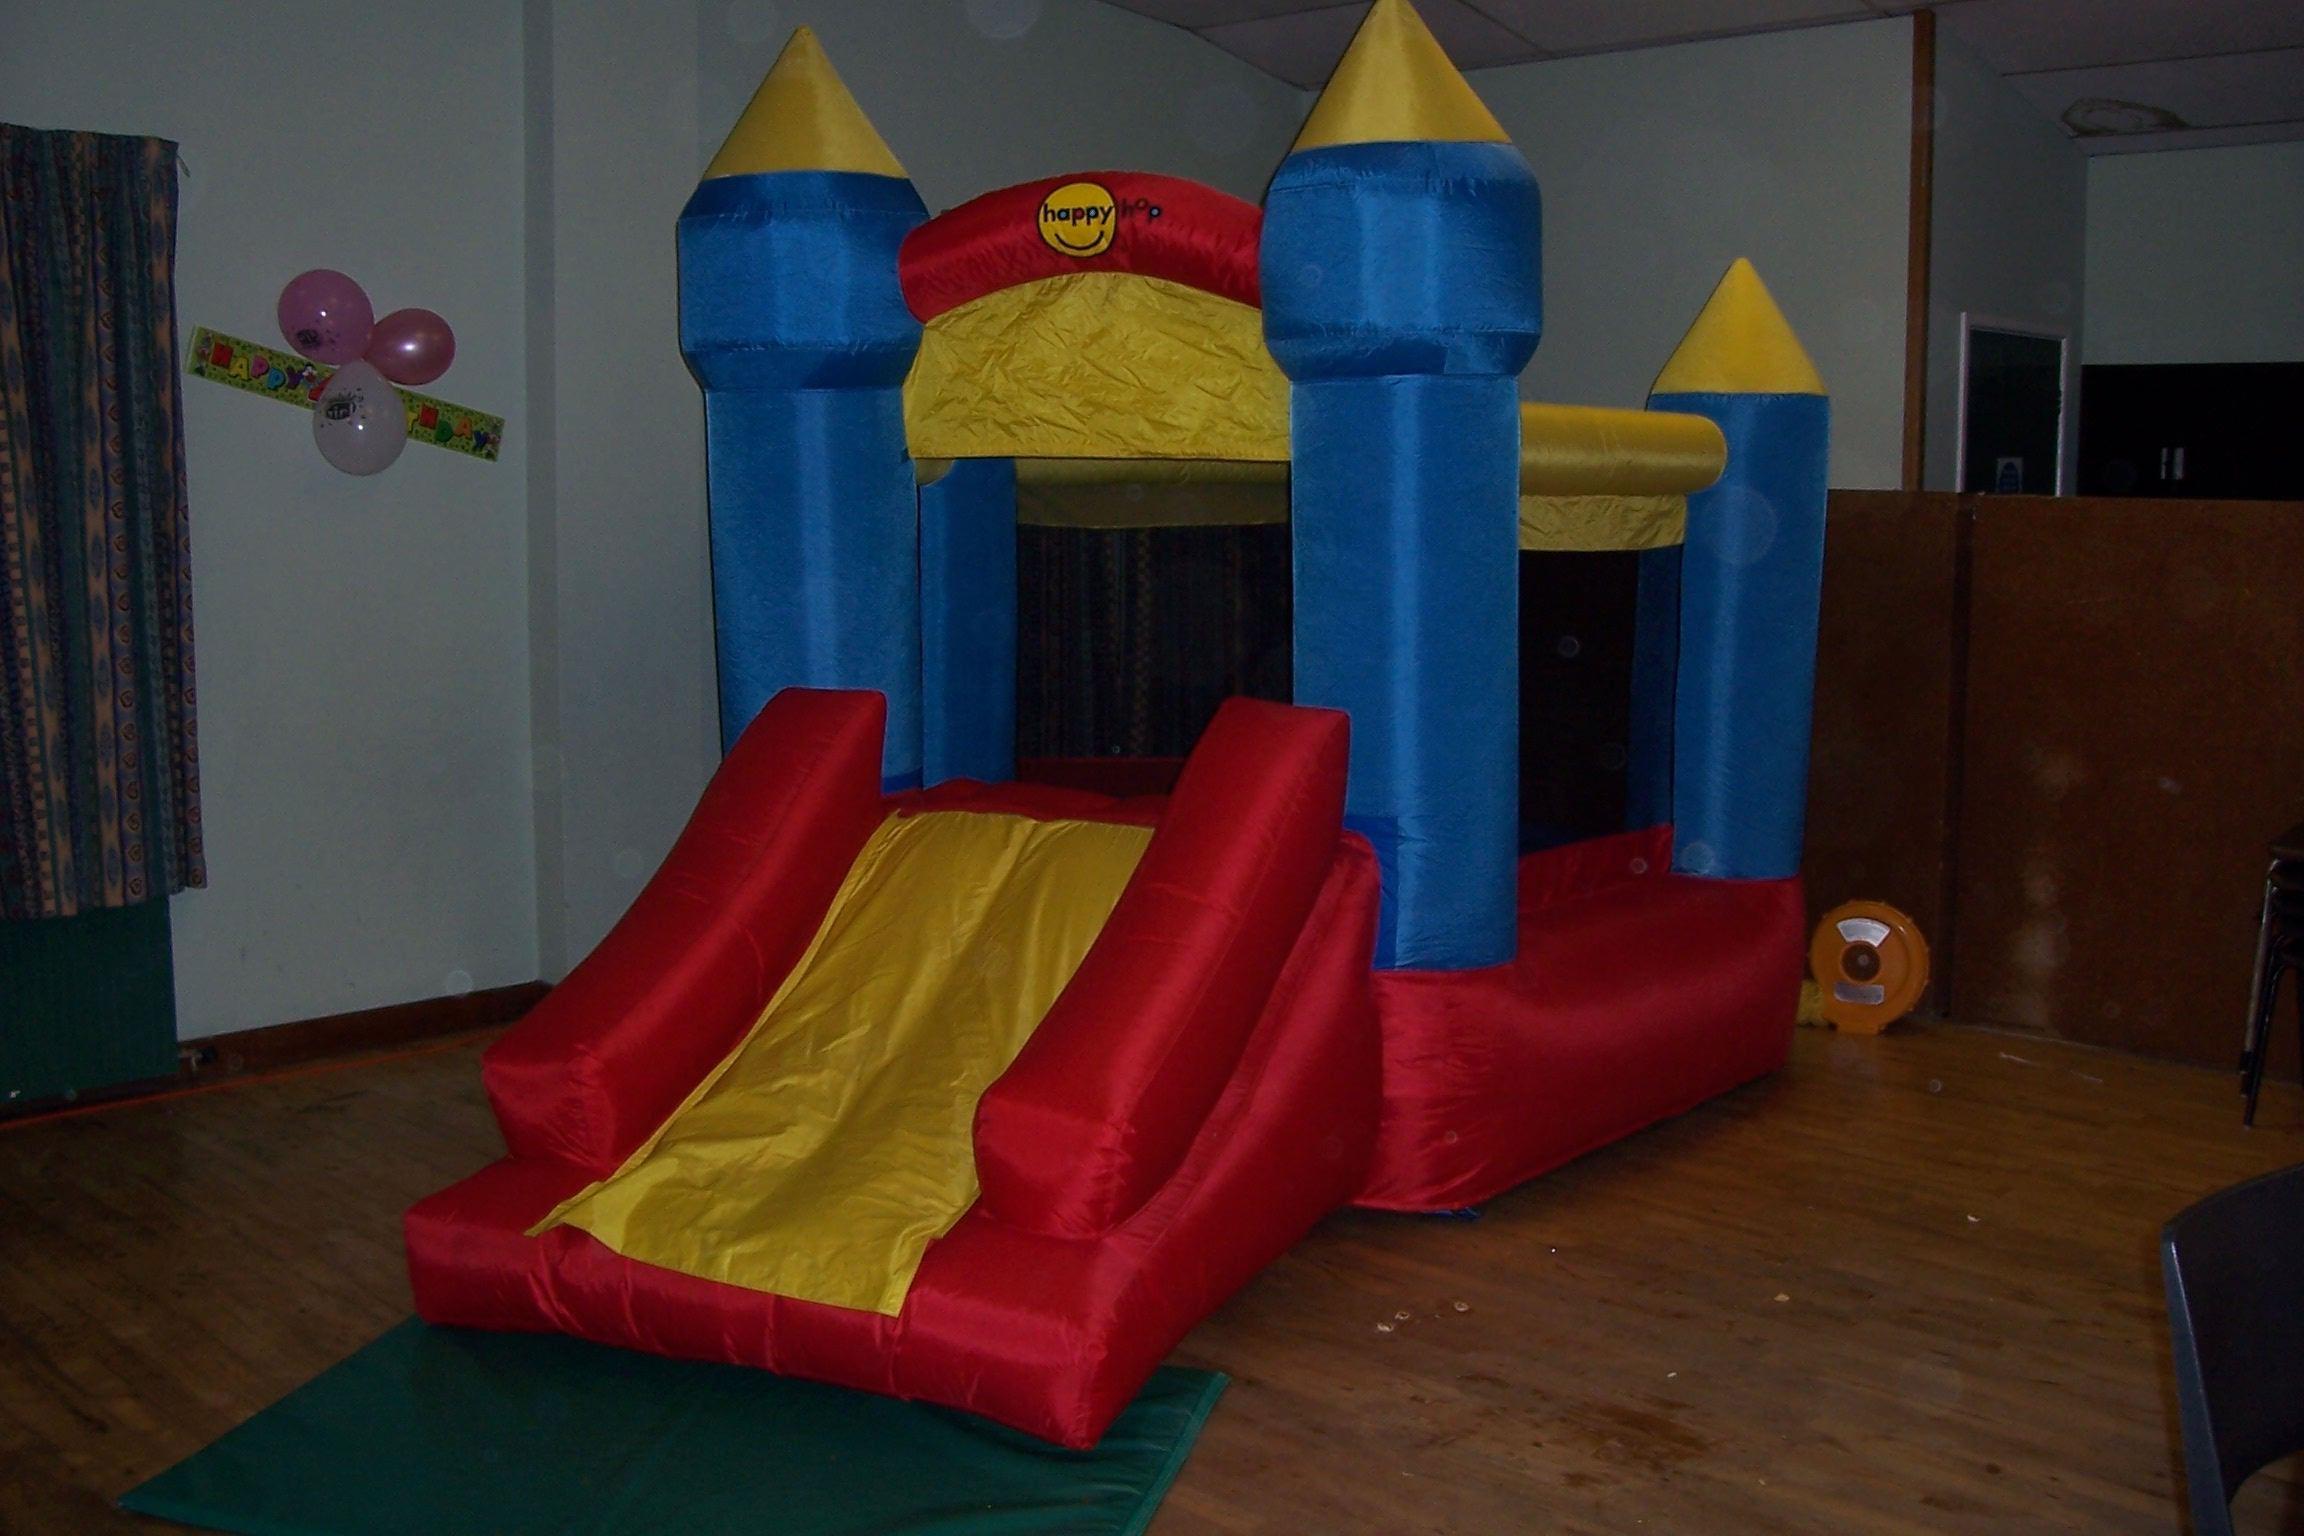 This bouncy castle is perfect for the little ones. As it's fairly low and compact, it fits well into smaller halls and gardens. Crash mats are provided for a safe landing when using the slide, and is suitable for children up to 5 years.